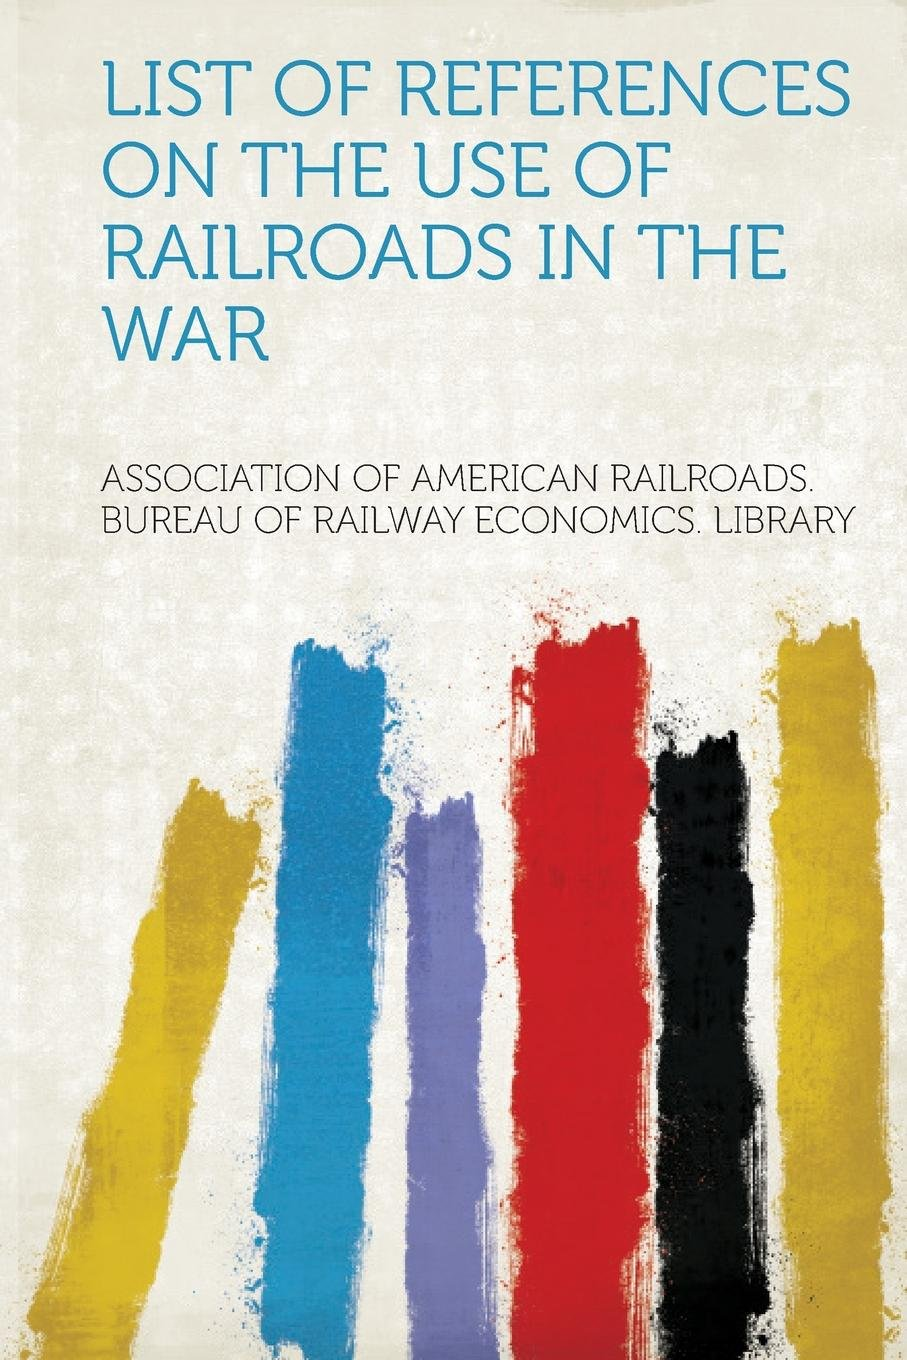 List of References on the Use of Railroads in the War